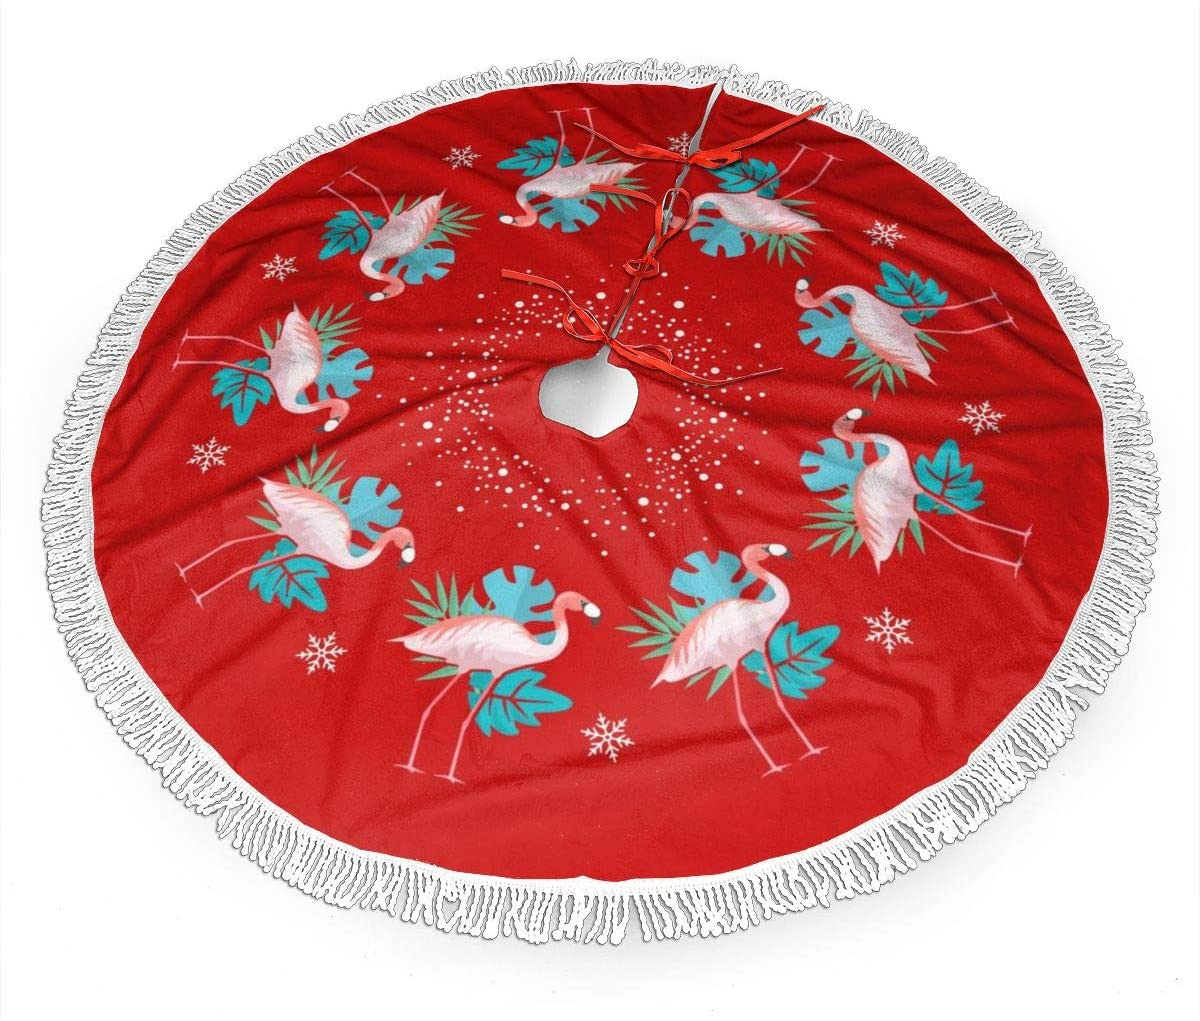 Jim Hugh Christmas Tree Skirt with White Fringed Trim, Snow Flakes and Flamingos 36 Inches Luxury Xmas Tree Skirt for Party Holiday Decorations Christmas Ornaments